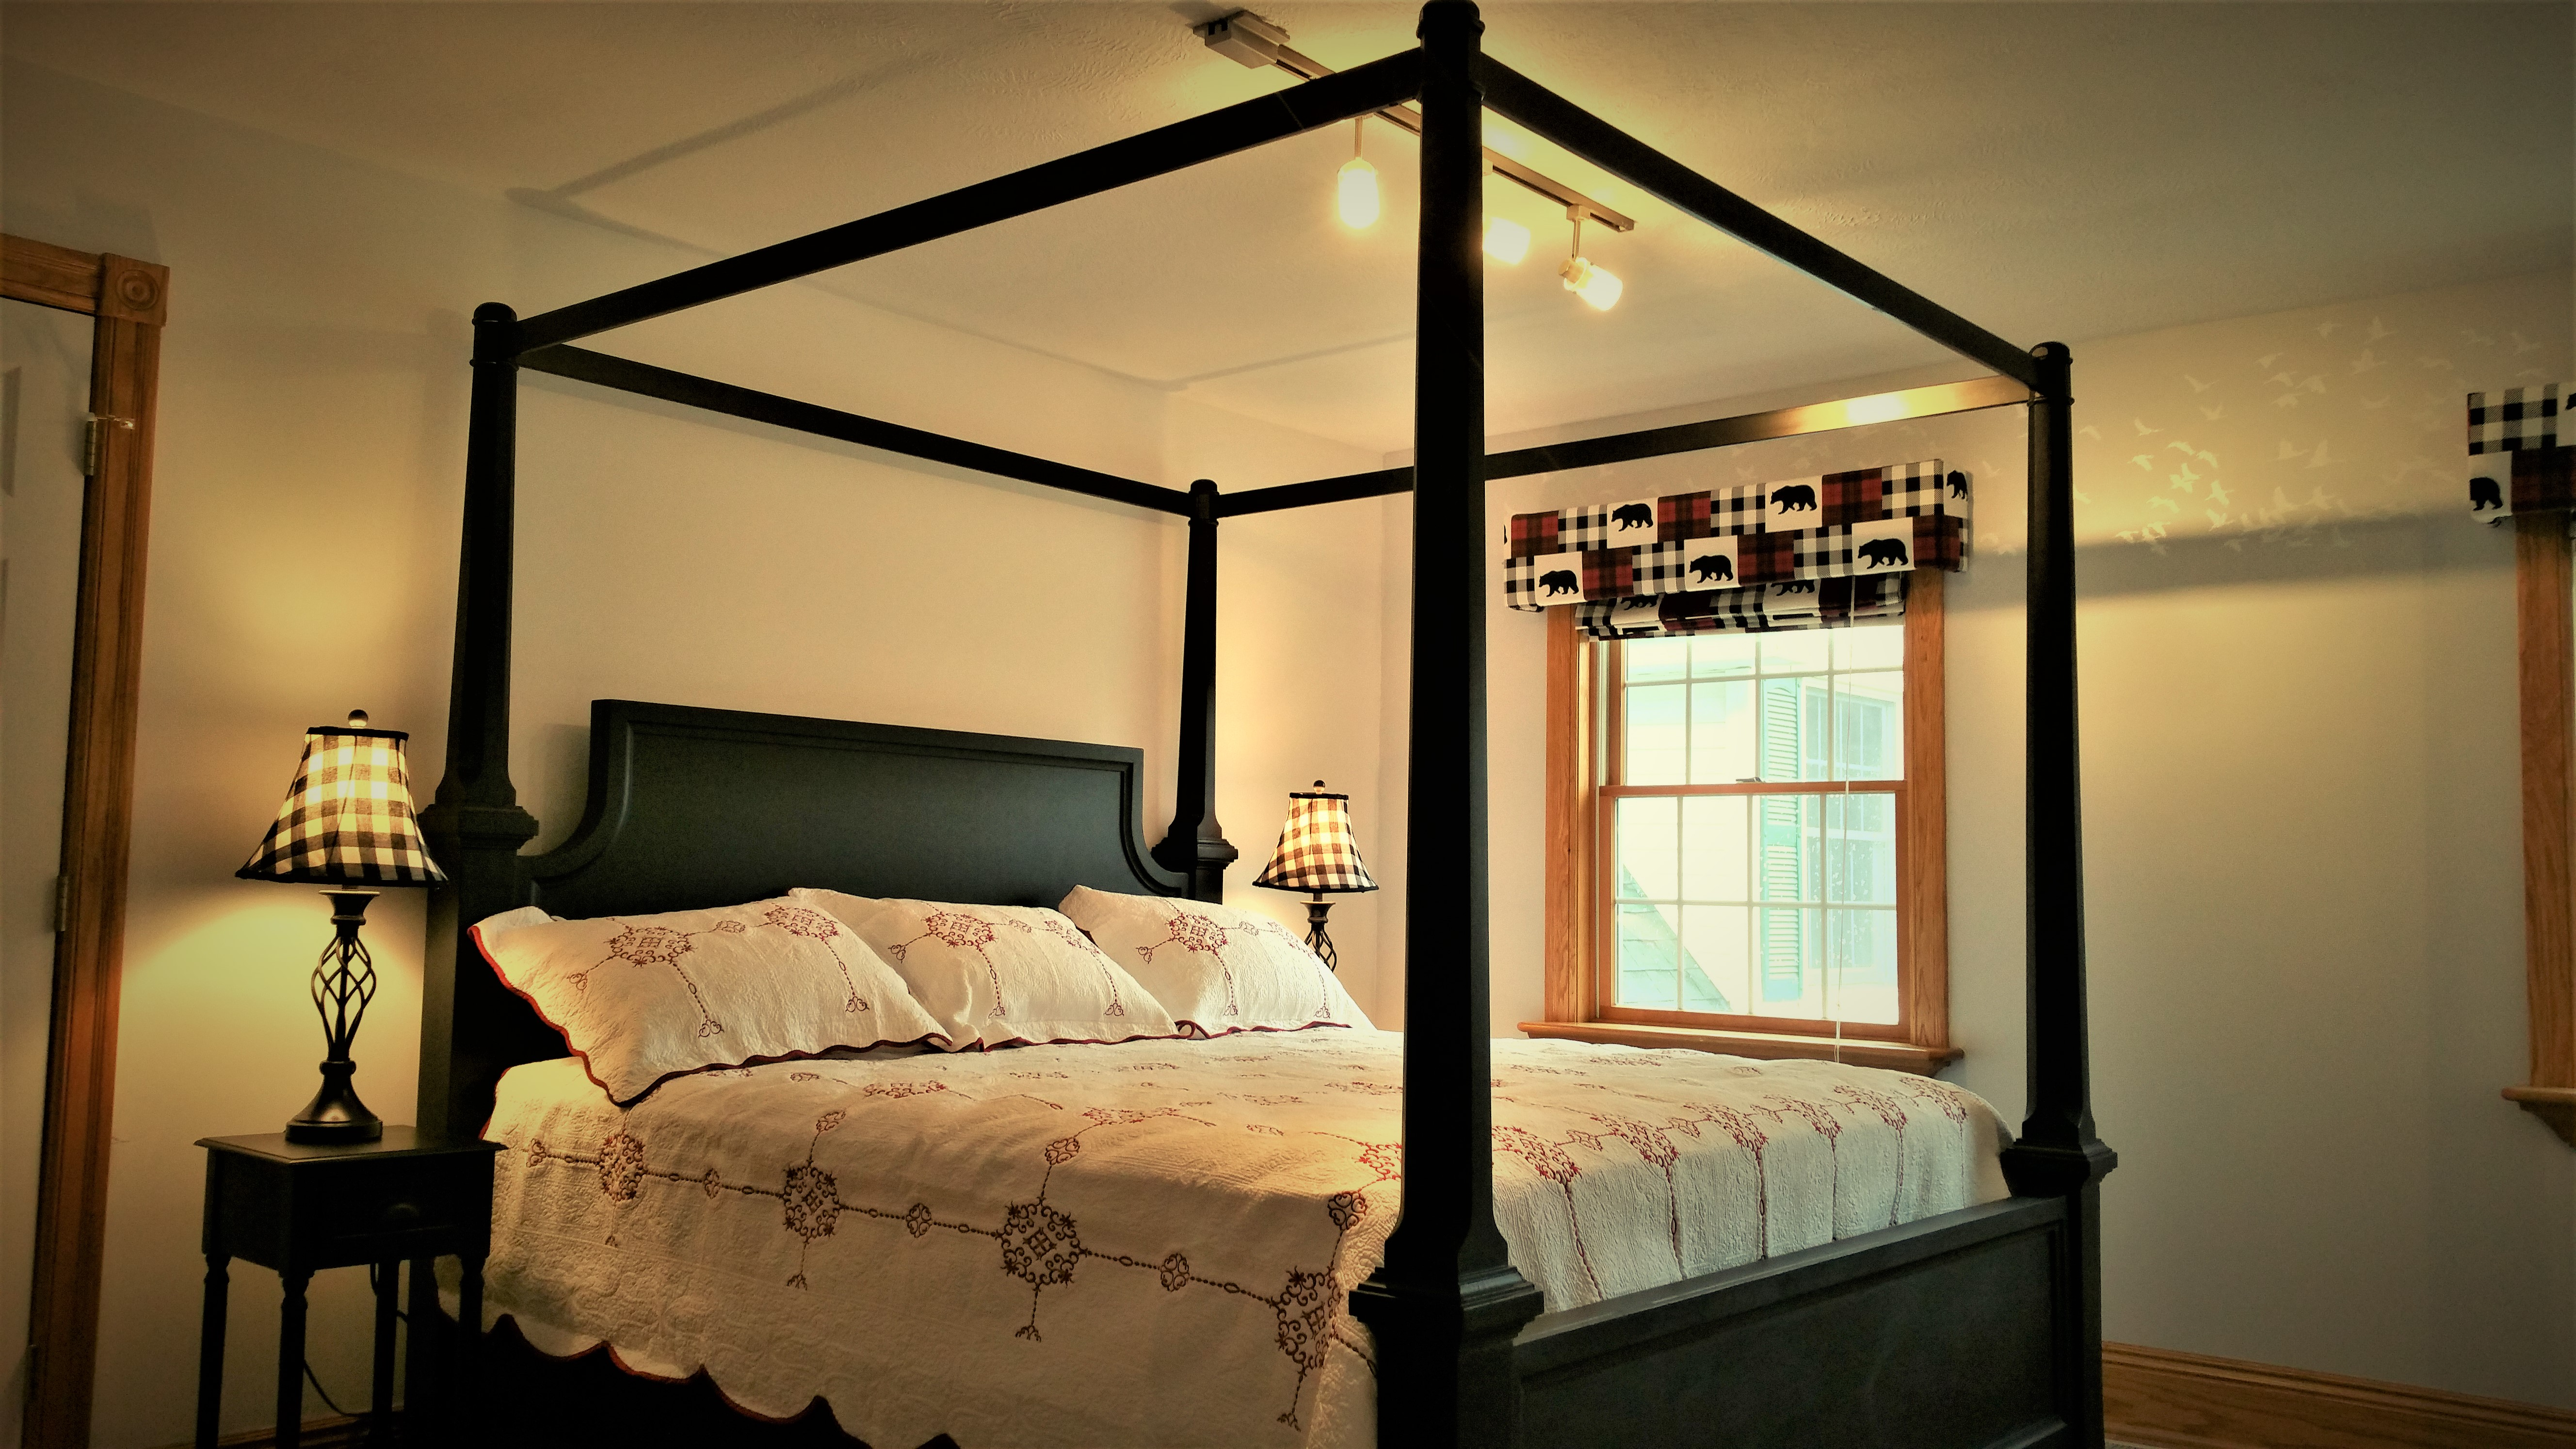 Four poster king bed with a window and lights next  to the bed